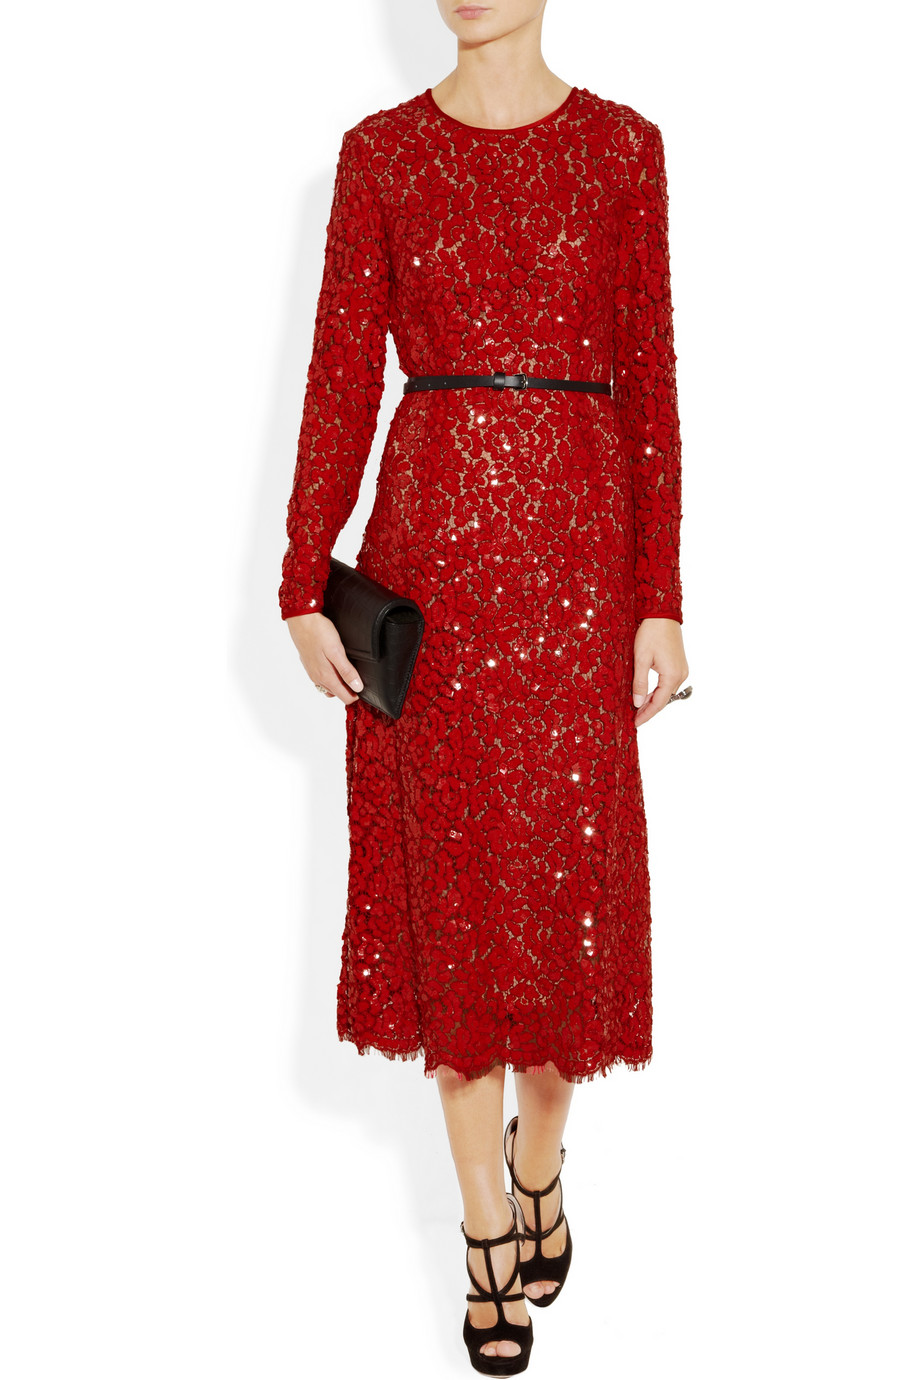 Lyst Michael Kors Sequined Lace Dress In Red